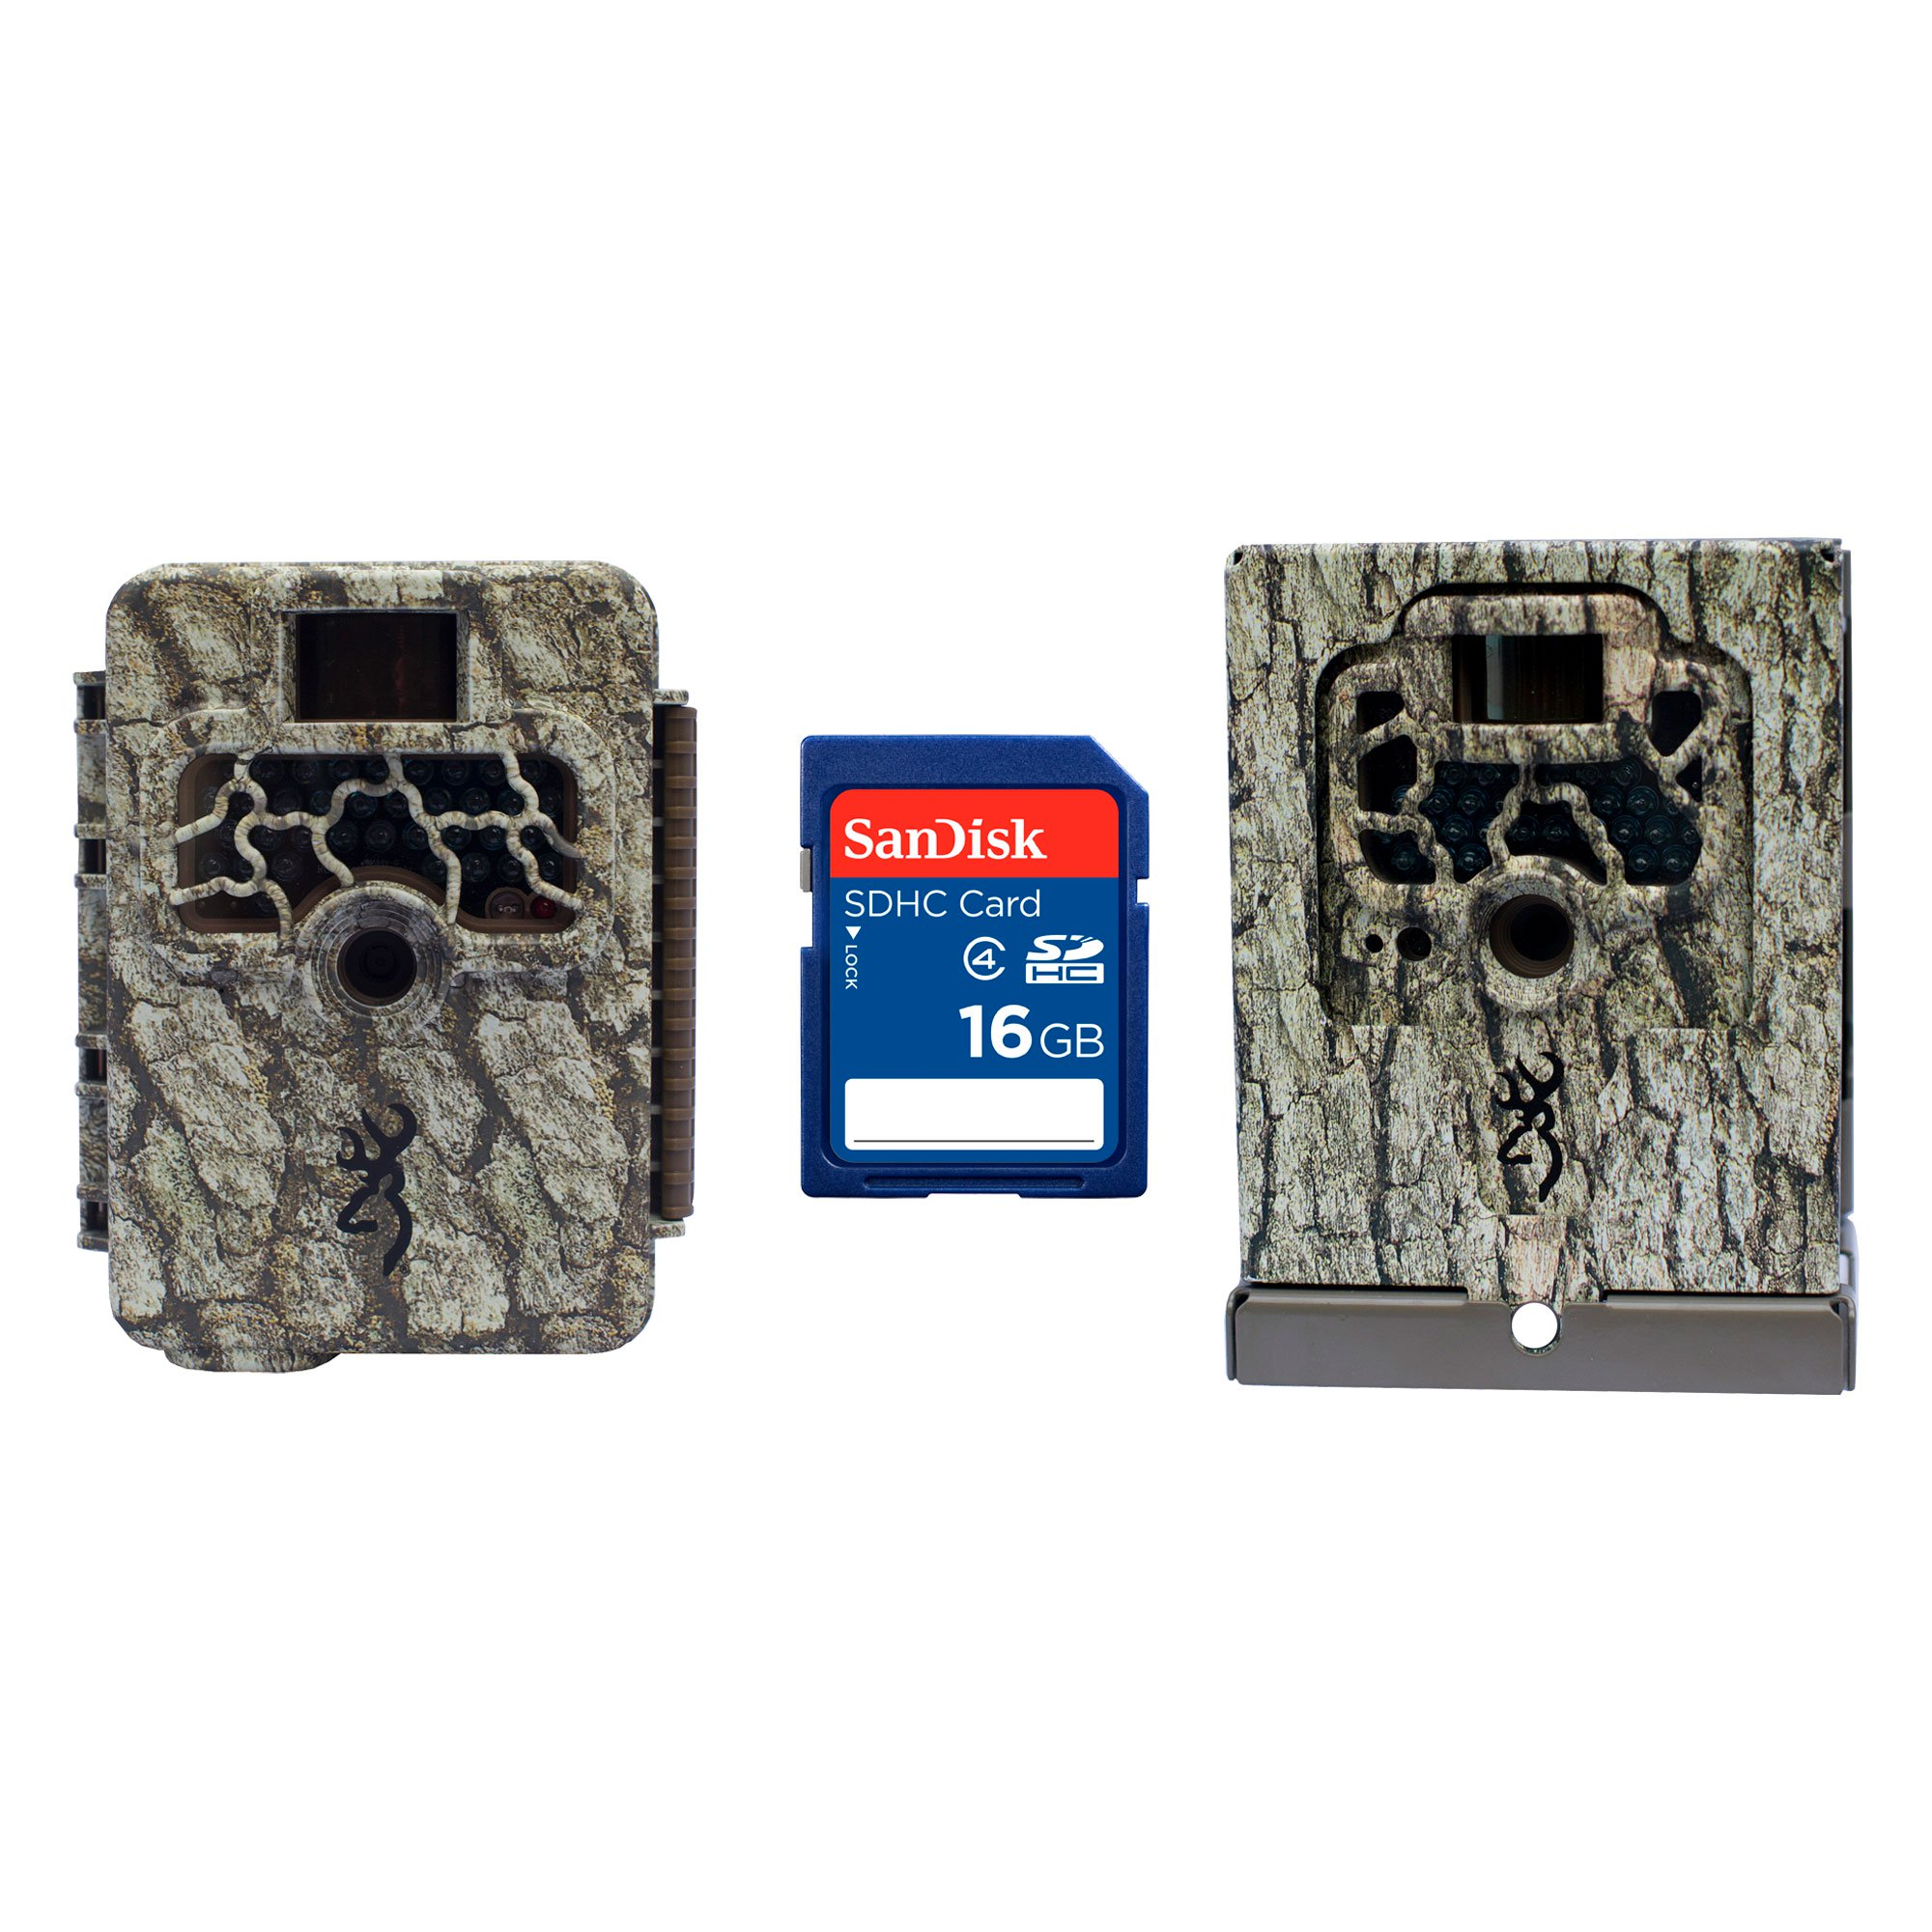 Browning Trail Cameras Command Ops 14MP HD Game Camera + Security Box + SD Card by Browning Trail Cameras